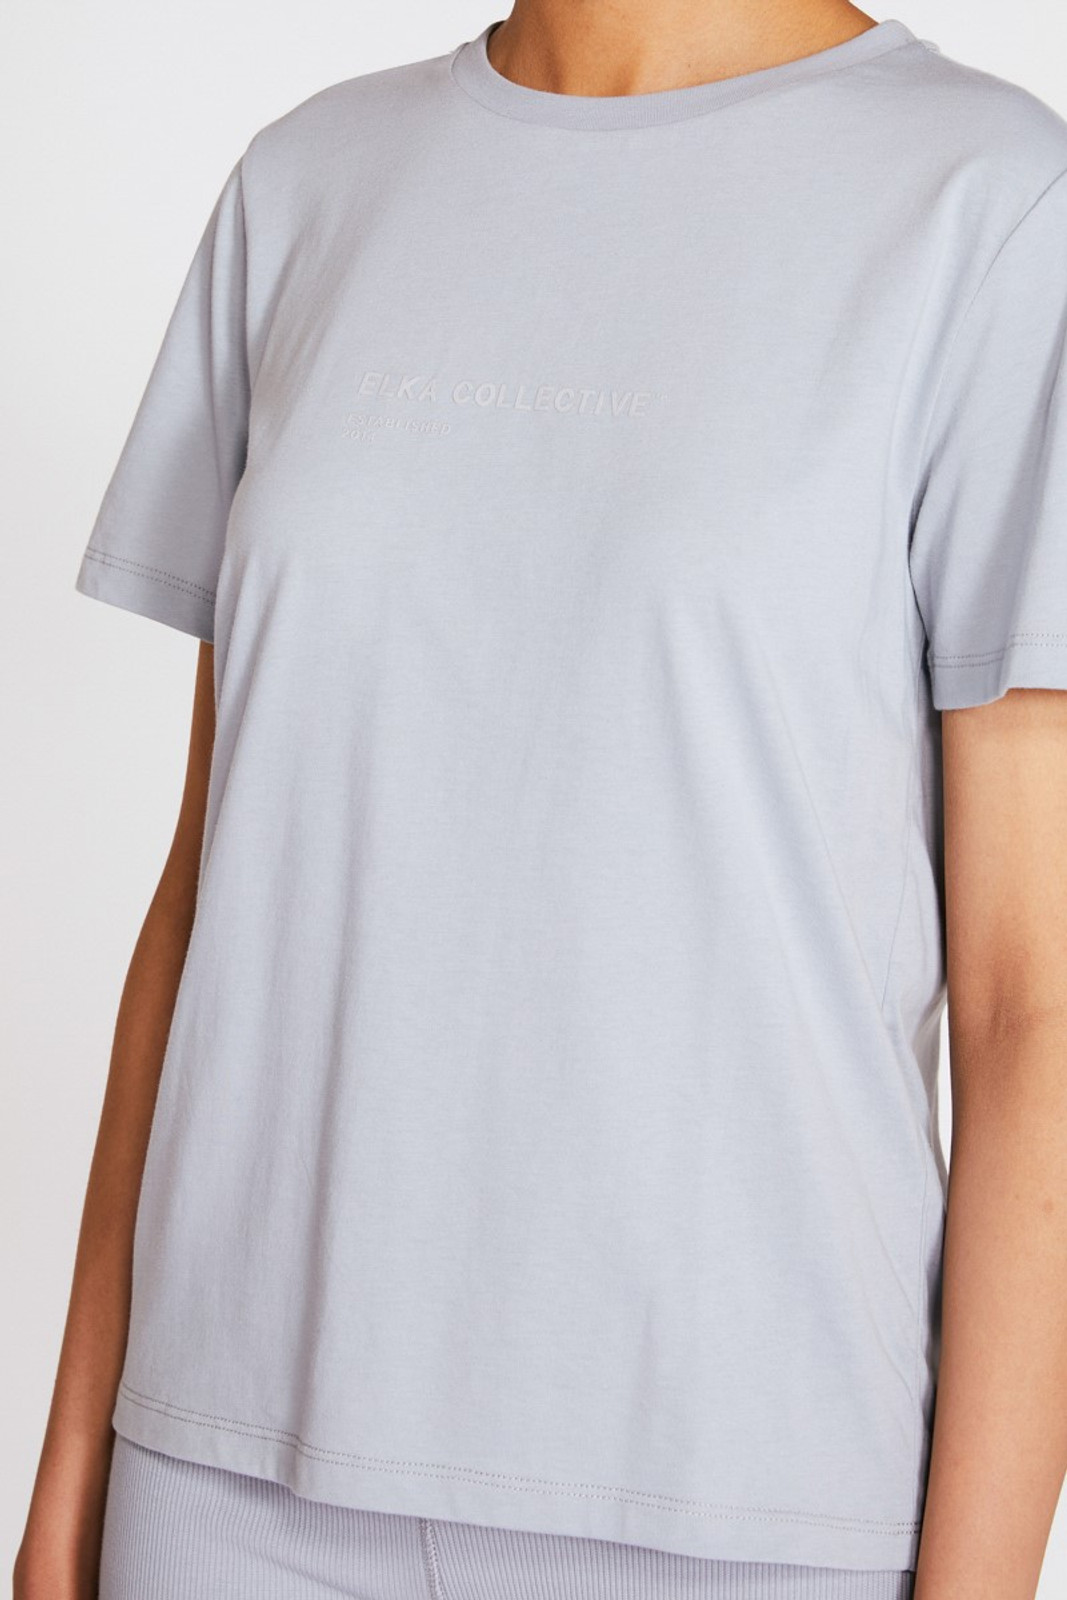 Elka Collective Trademark Tee Blue  3